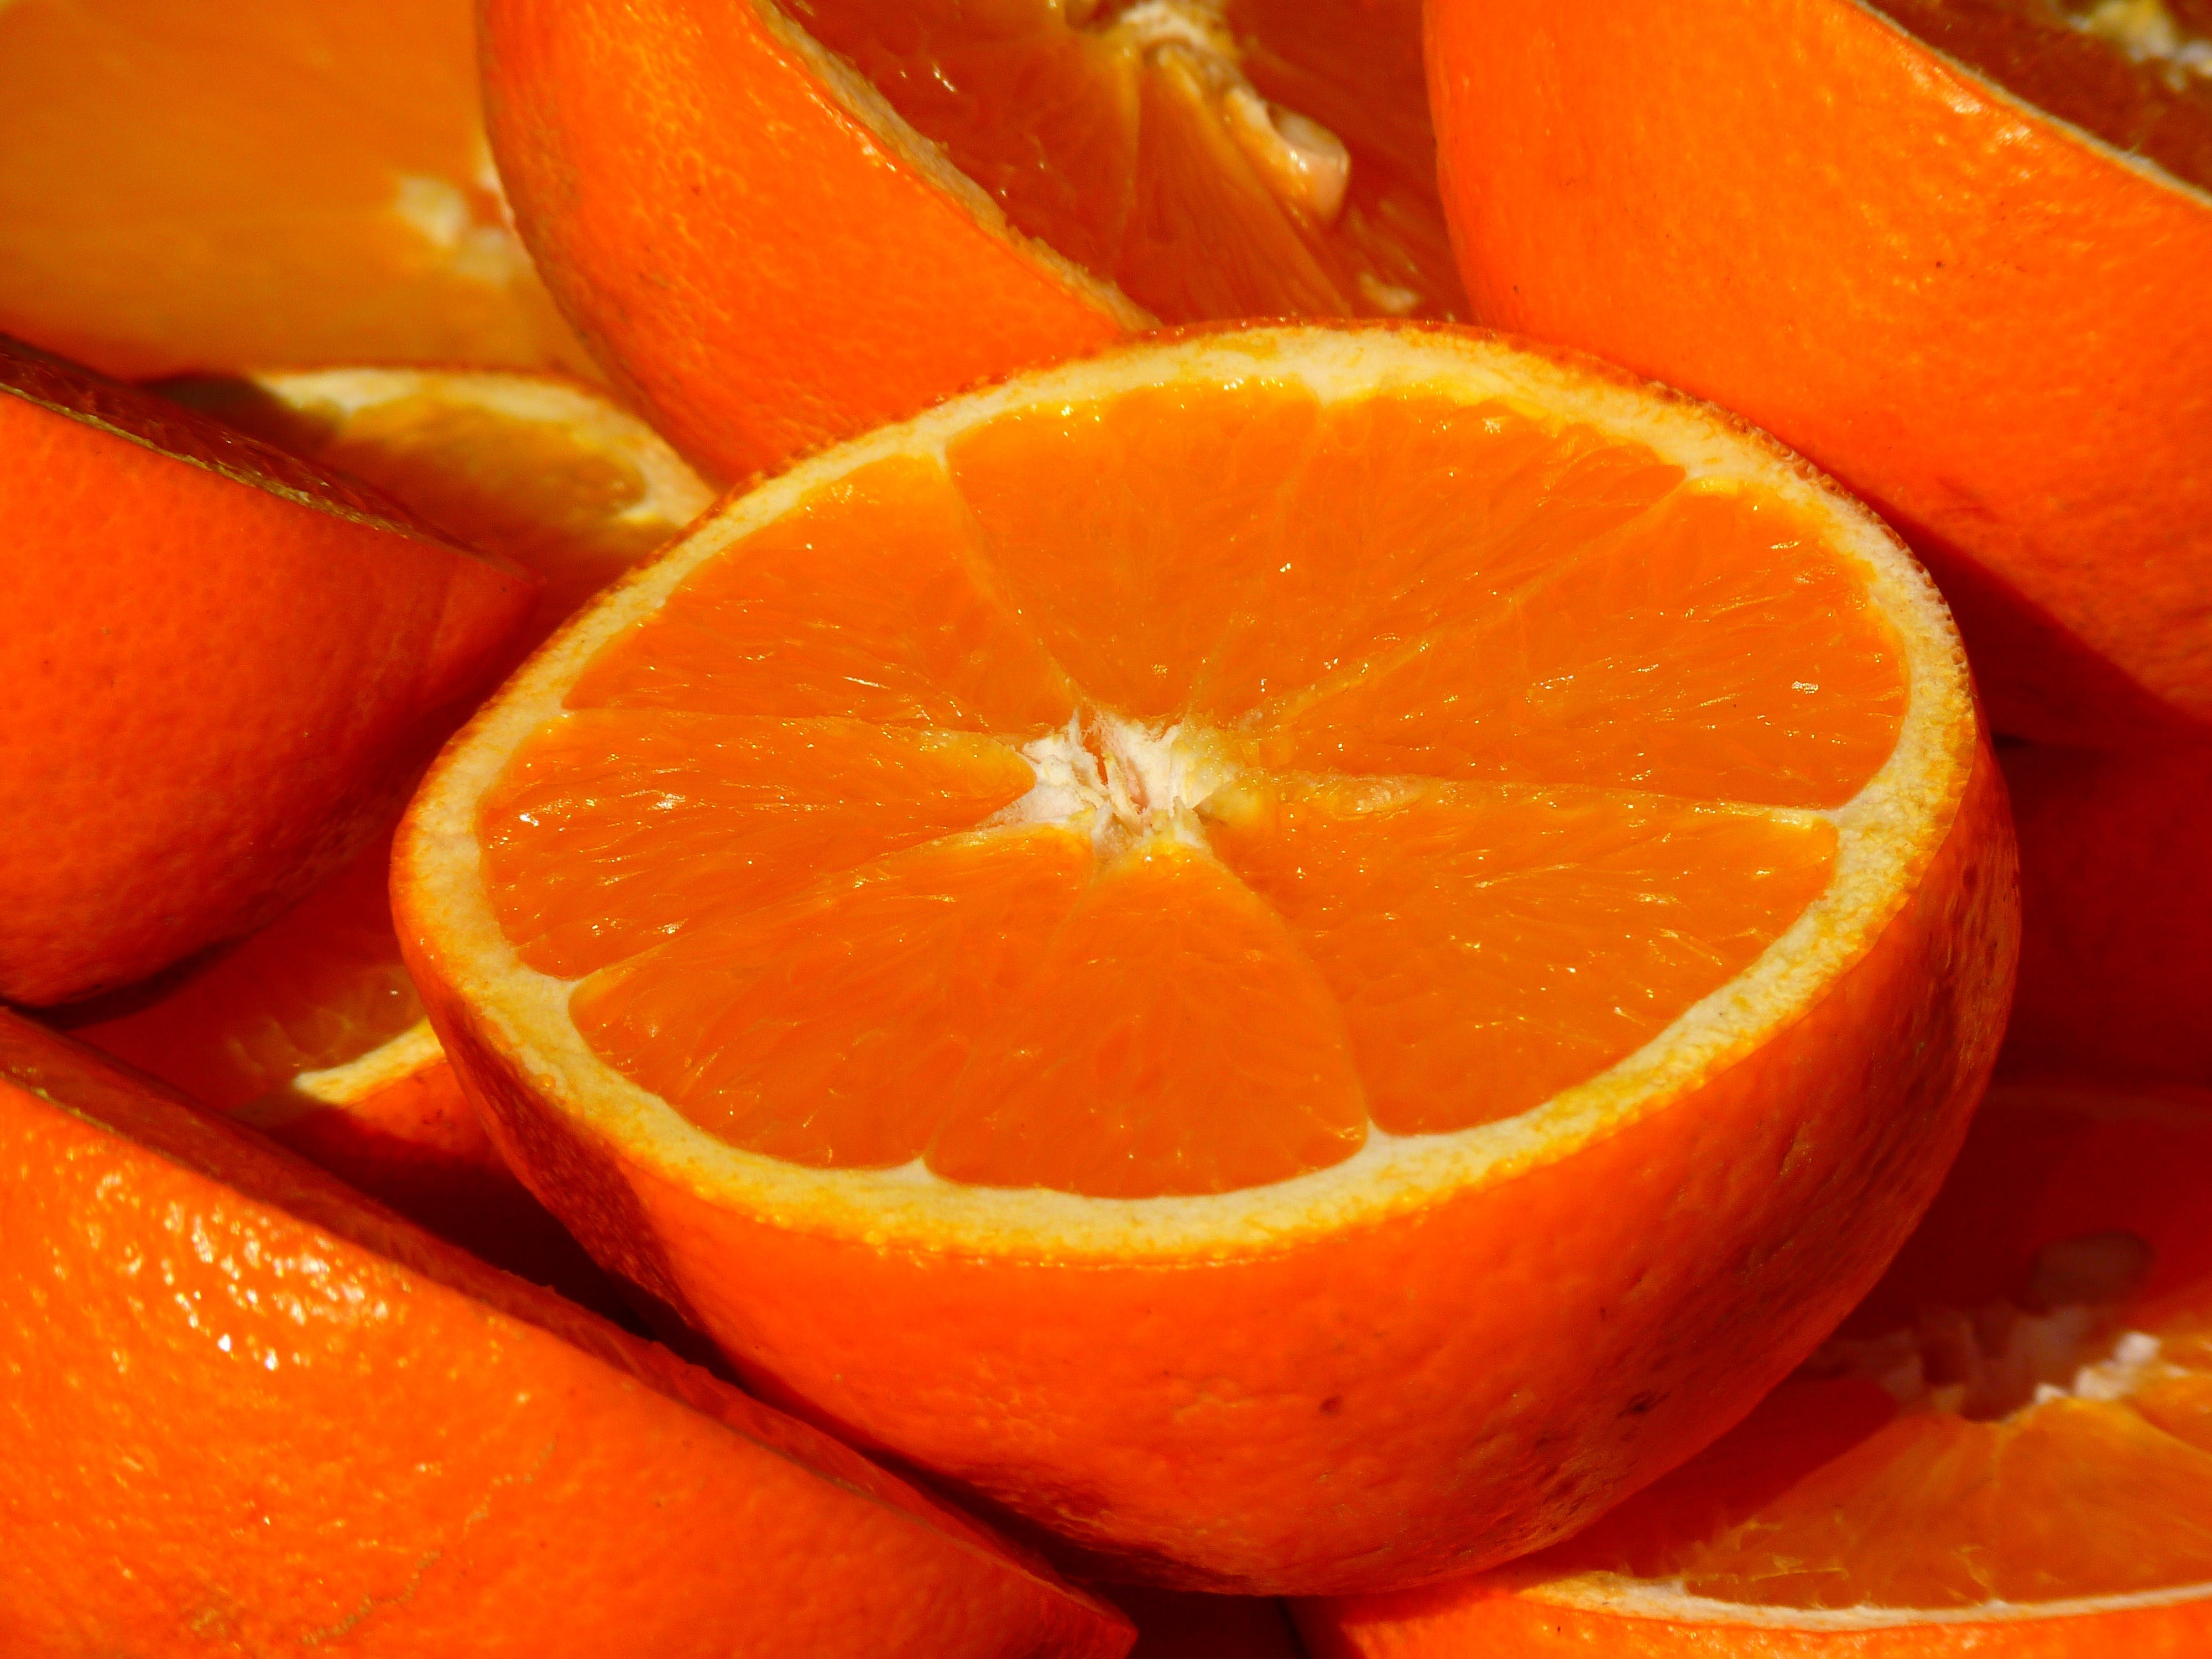 Half Cut Orange Fruit